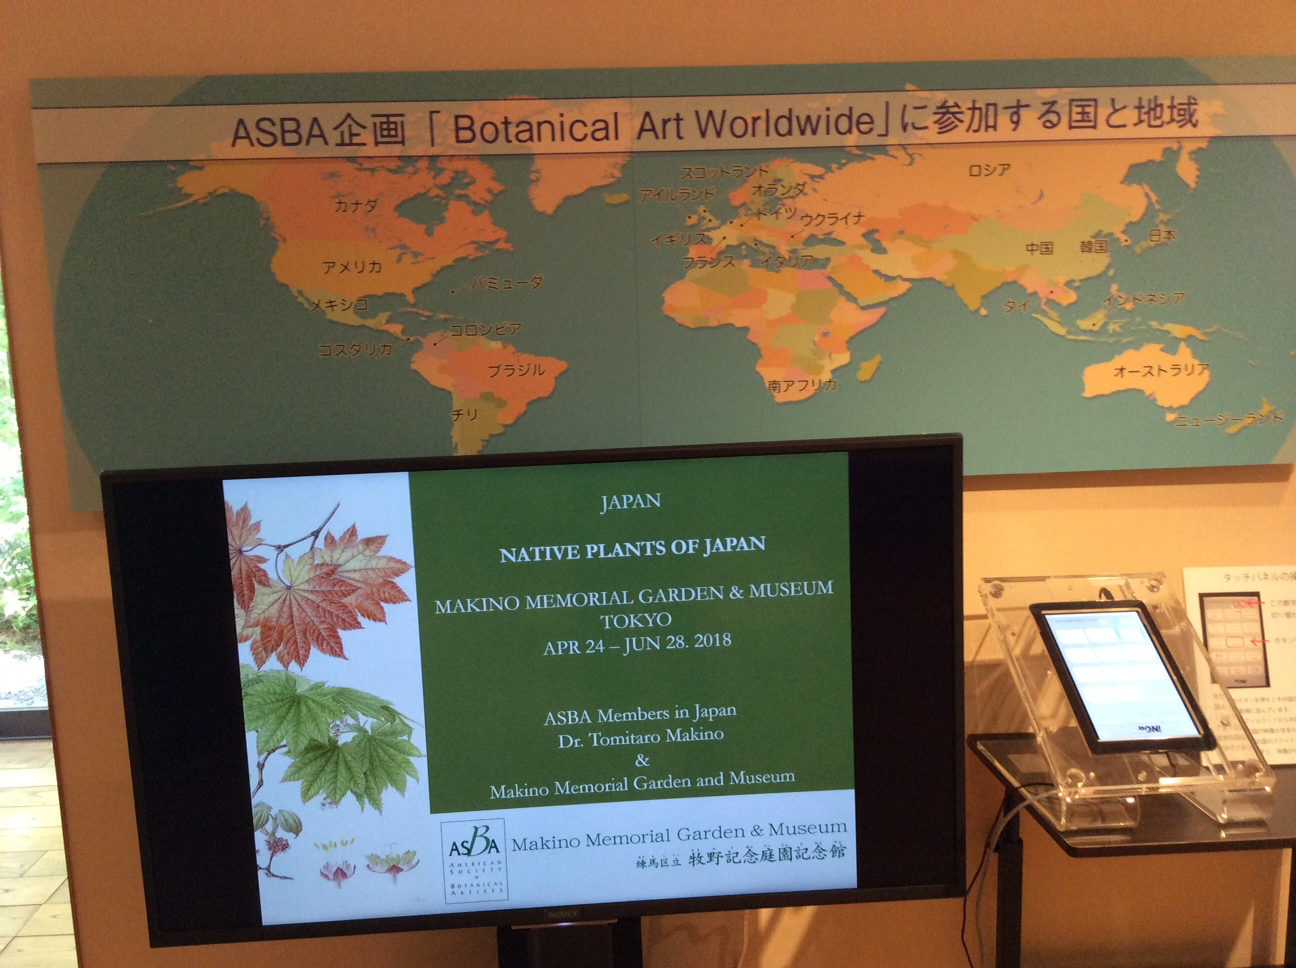 The Botanical Art Worldwide slideshow viewing; countries can be selected with the digital notebook to the right.